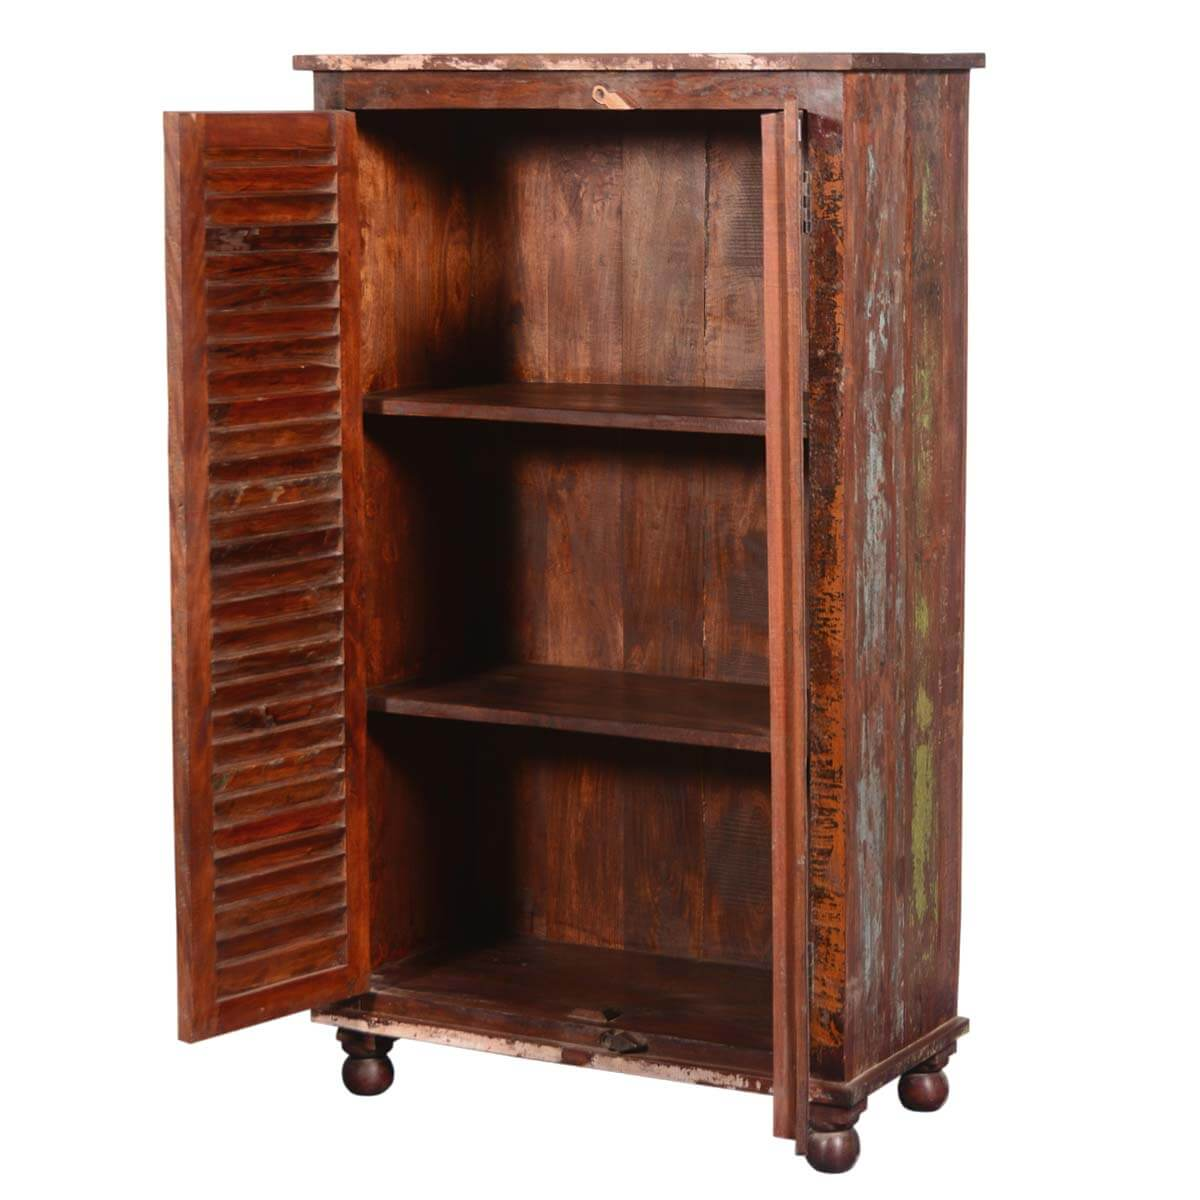 Painted shutter doors reclaimed wood wardrobe armoire cabinet for Wood doors on painted cabinets